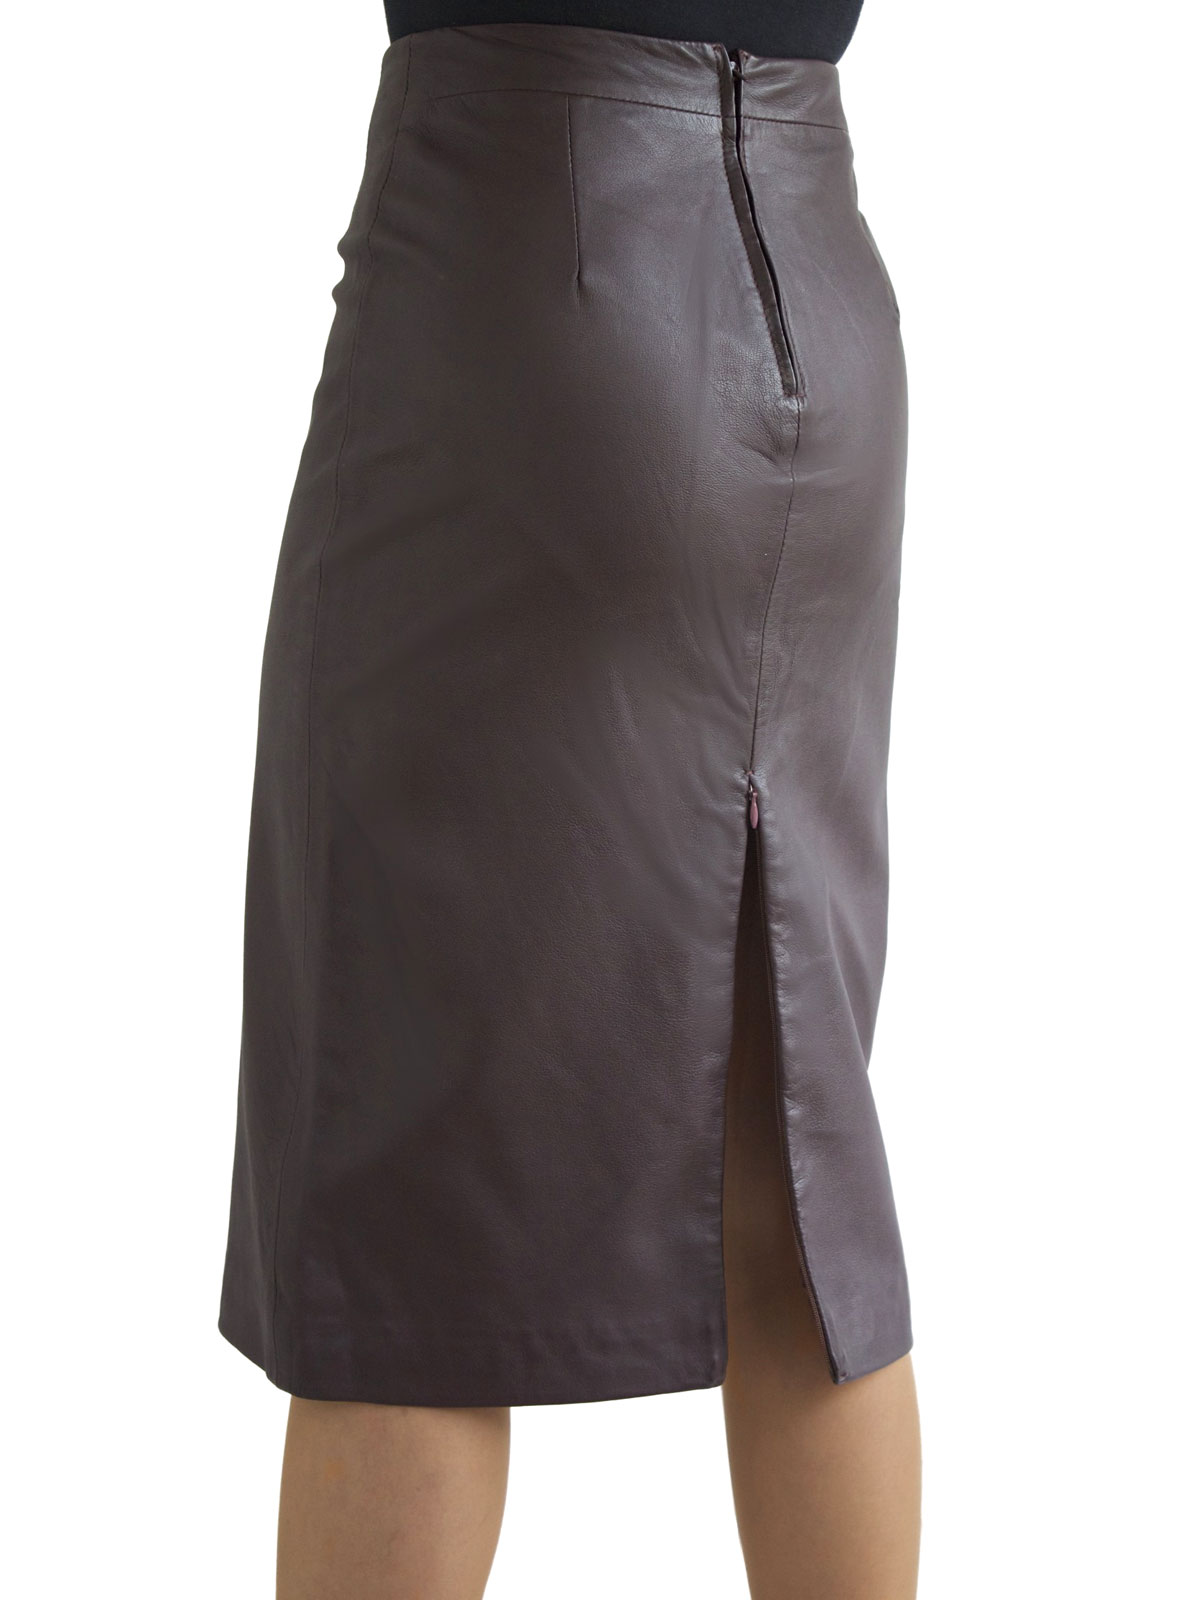 Find great deals on eBay for Leather MIDI Skirt in Skirts, Clothing, Shoes and Accessories for Women. Shop with confidence. Skip to main content. eBay: Shop by category. NWOT Armani collezioni % calf leather midi pencil skirt. Topshop Black Pencil Skirt Midi Size 14 Faux Leather Waistband Stretchy On Trend. $ 0 bids.